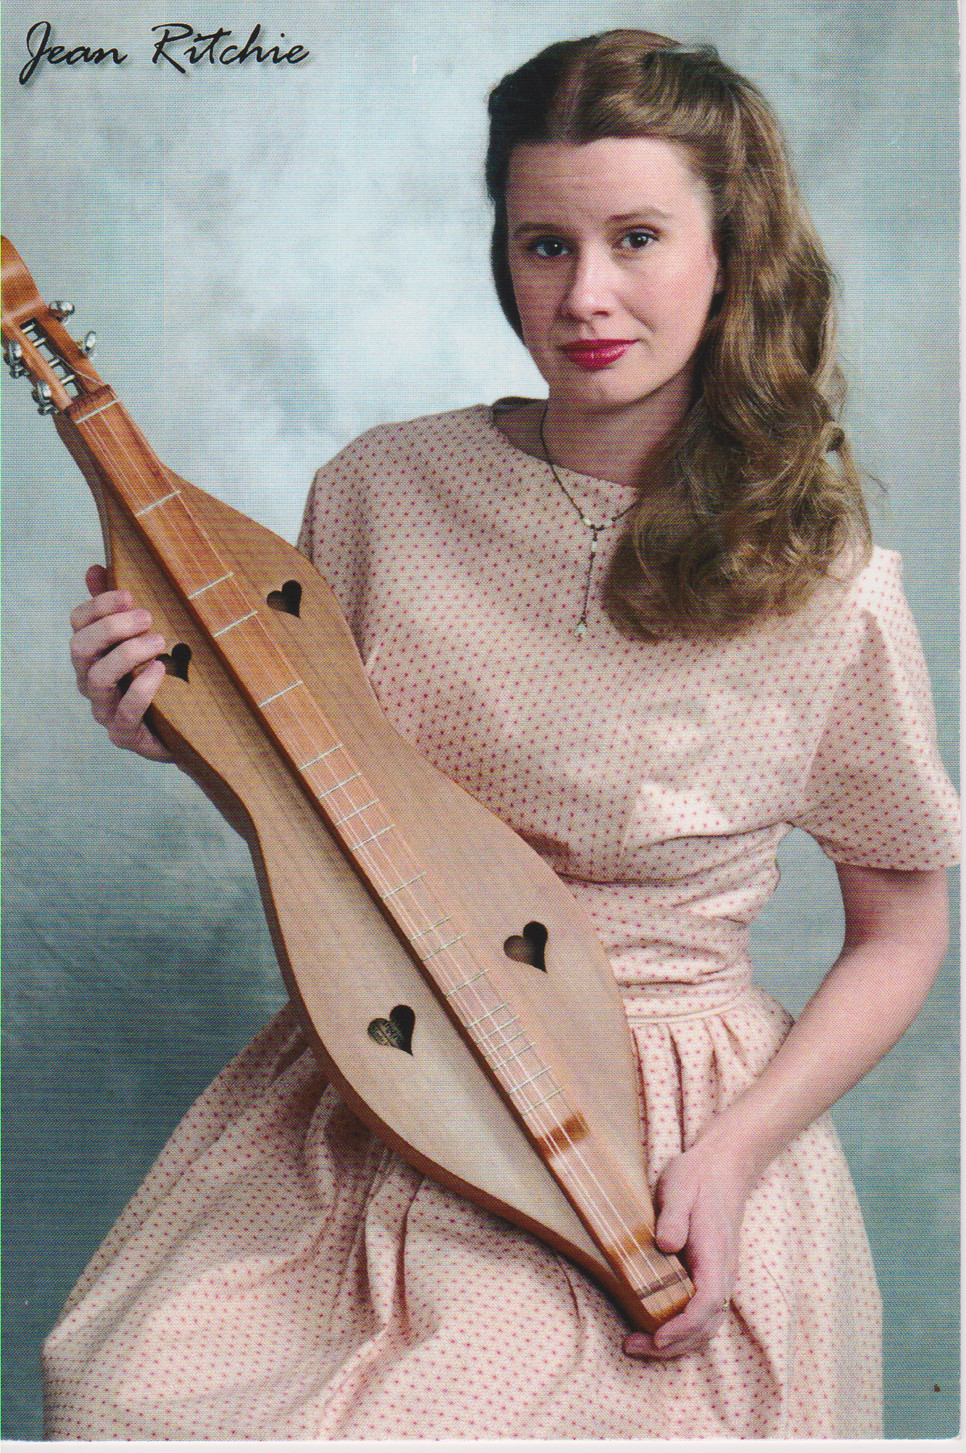 """DAMSEL WITH A DULCIMER,"" the story of Jean Ritchie, will be presented by Versailles native Rachel Lee Rogers on Thursday, Oct. 26, at the Woodford County Historical Society's library and museum at 121 Rose Hill in Versailles. (Photo submitted)"